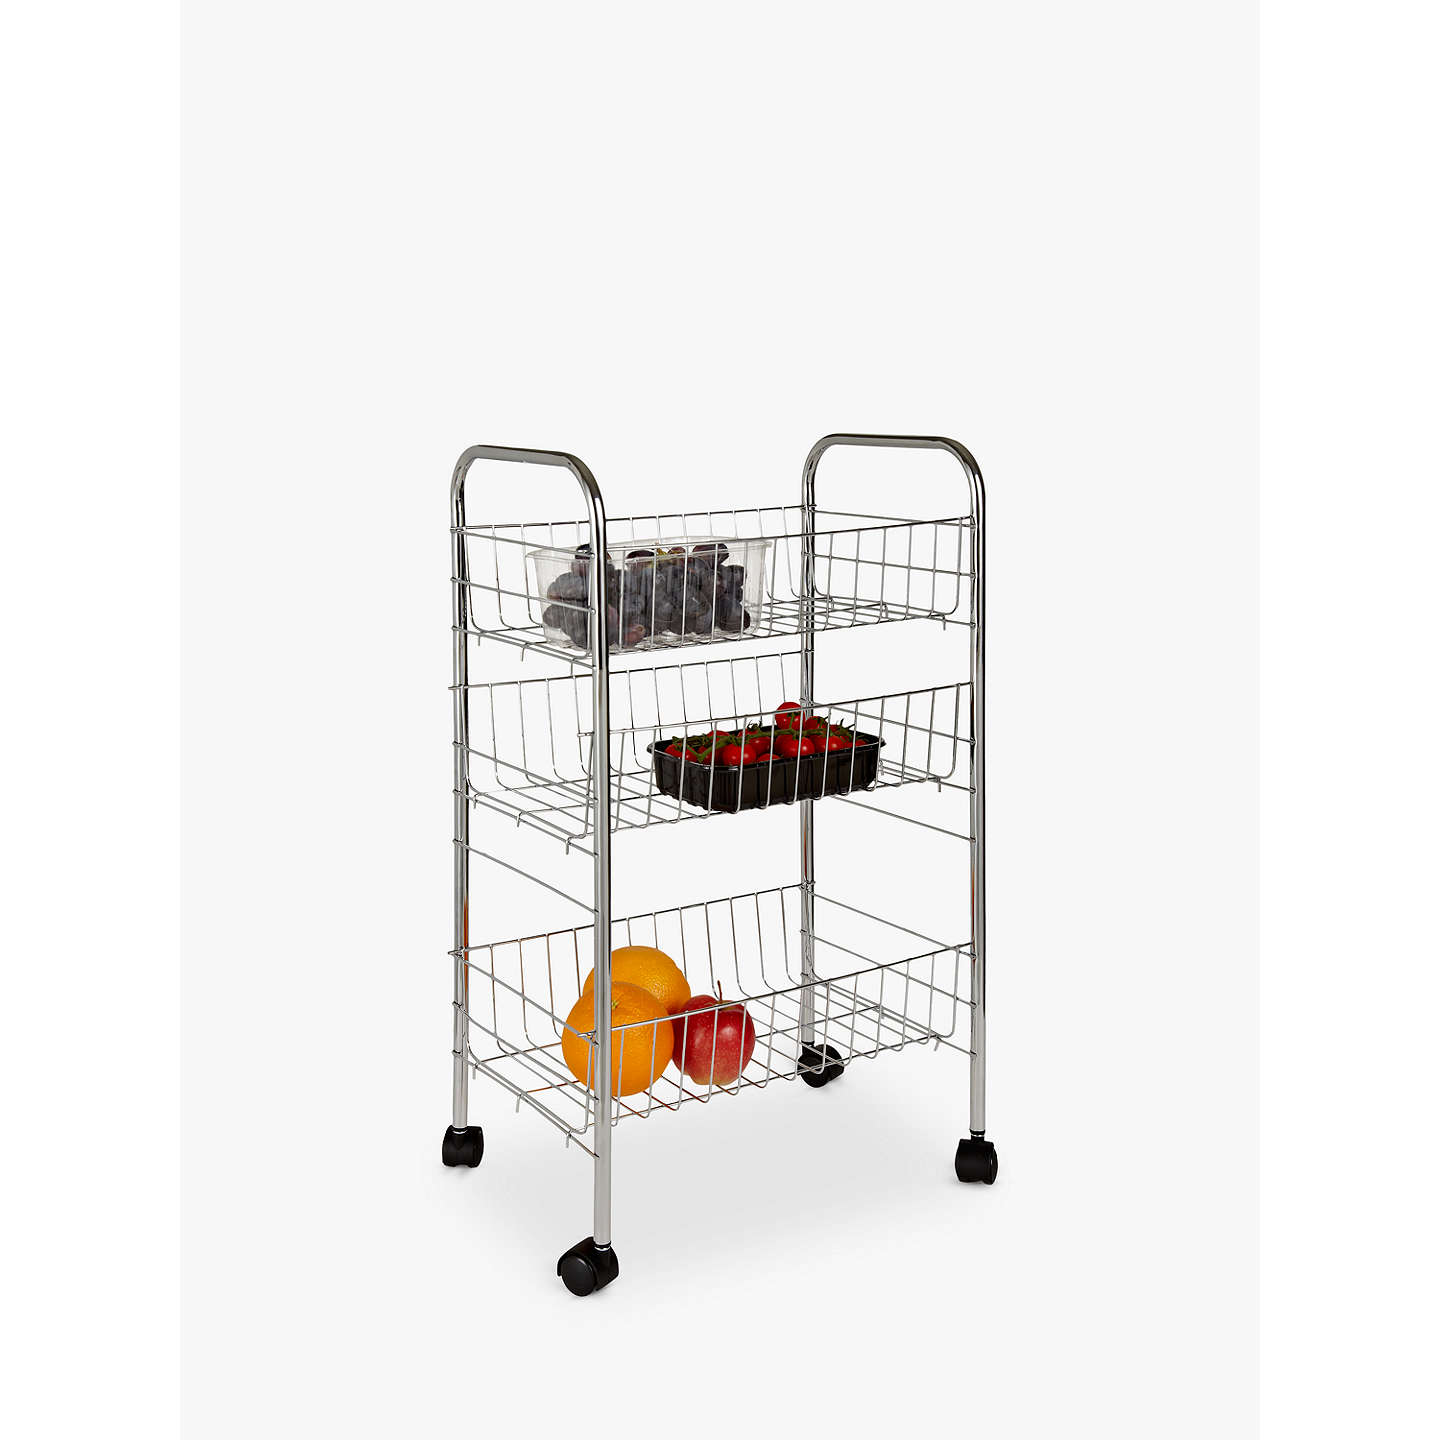 Wenko 3 Tier Metal Vegetable Trolley, Silver at John Lewis